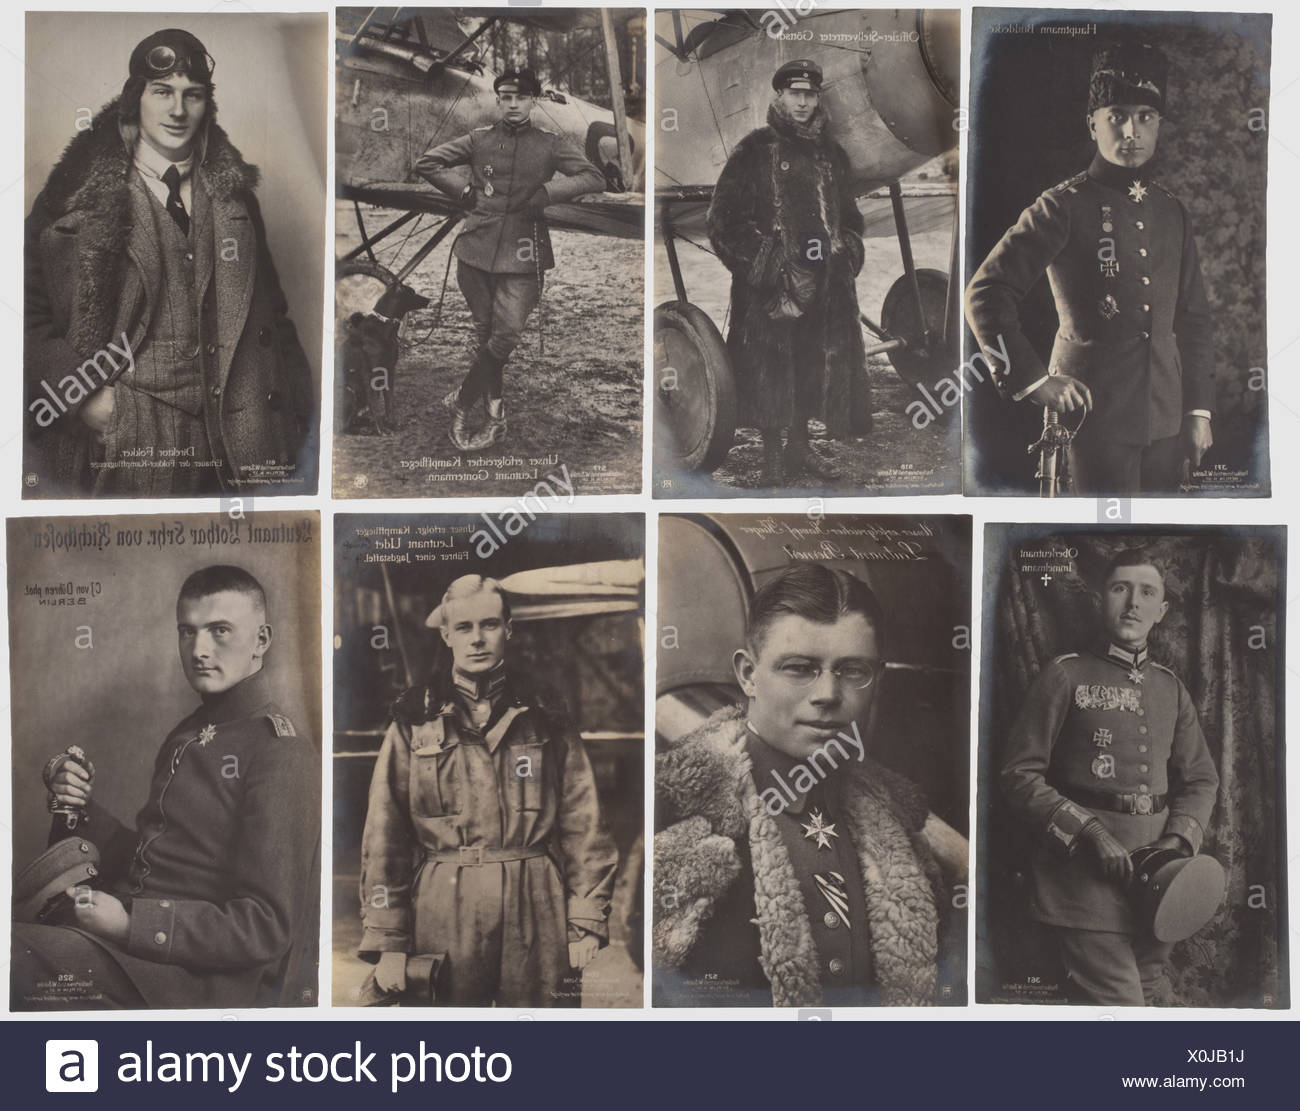 Collection of 80 portrait postcards, of German flying a historic, historical, people, 1910s, 20th century, troop, troops, armed forces, military, militaria, army, wing, group, air force, air forces, photograph, photo, photographs, object, objects, stills, clipping, clippings, cut out, cut-out, cut-outs, man, men, male, Additional-Rights-Clearences-NA - Stock Image